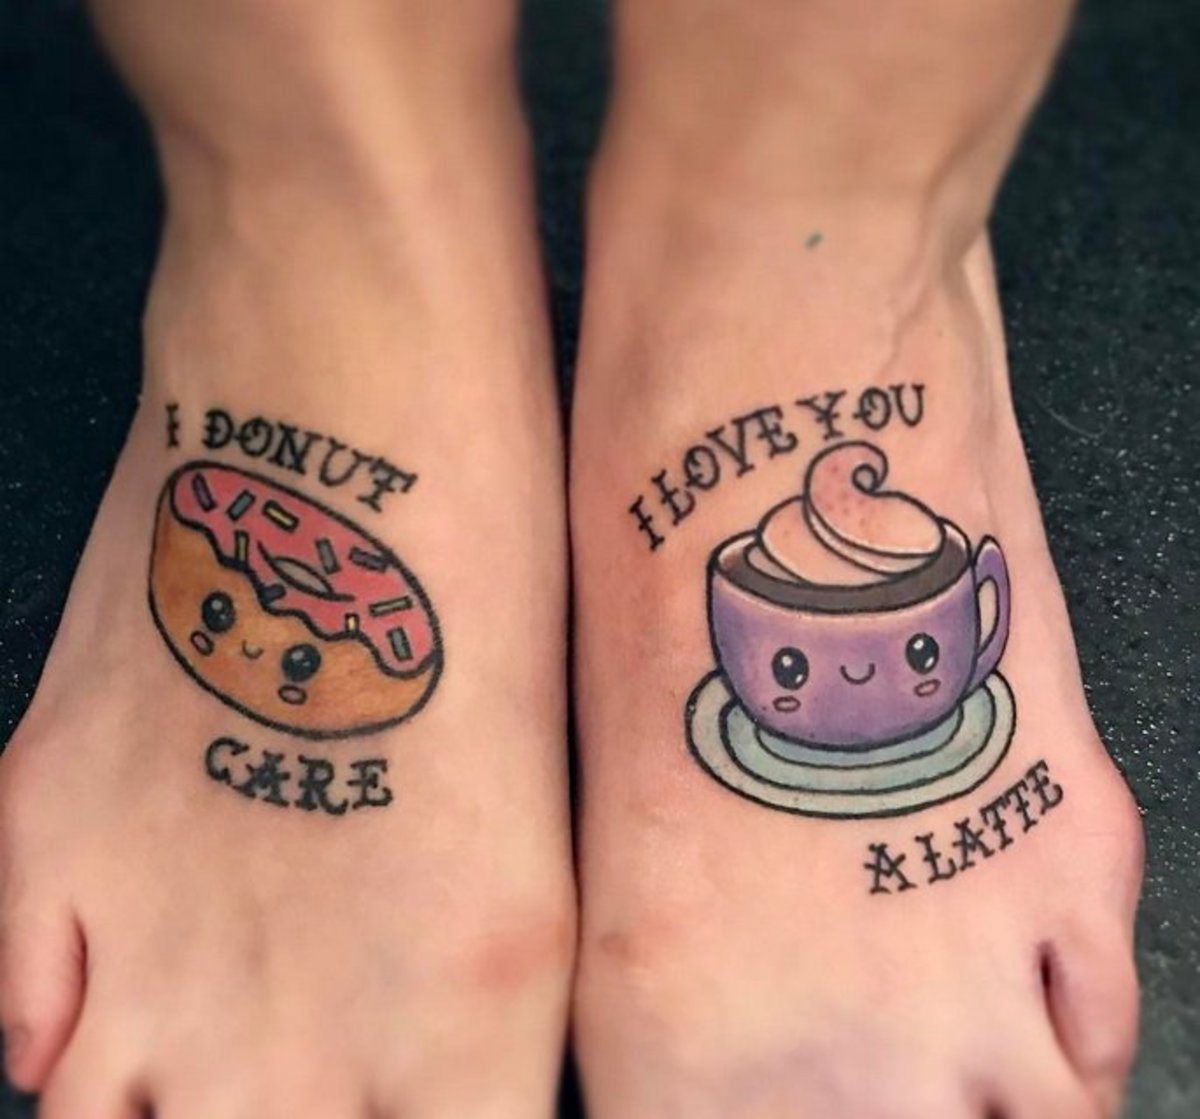 Tattoo Ideas Artists And Models: Mirror Tattoos Are The Latest Trend